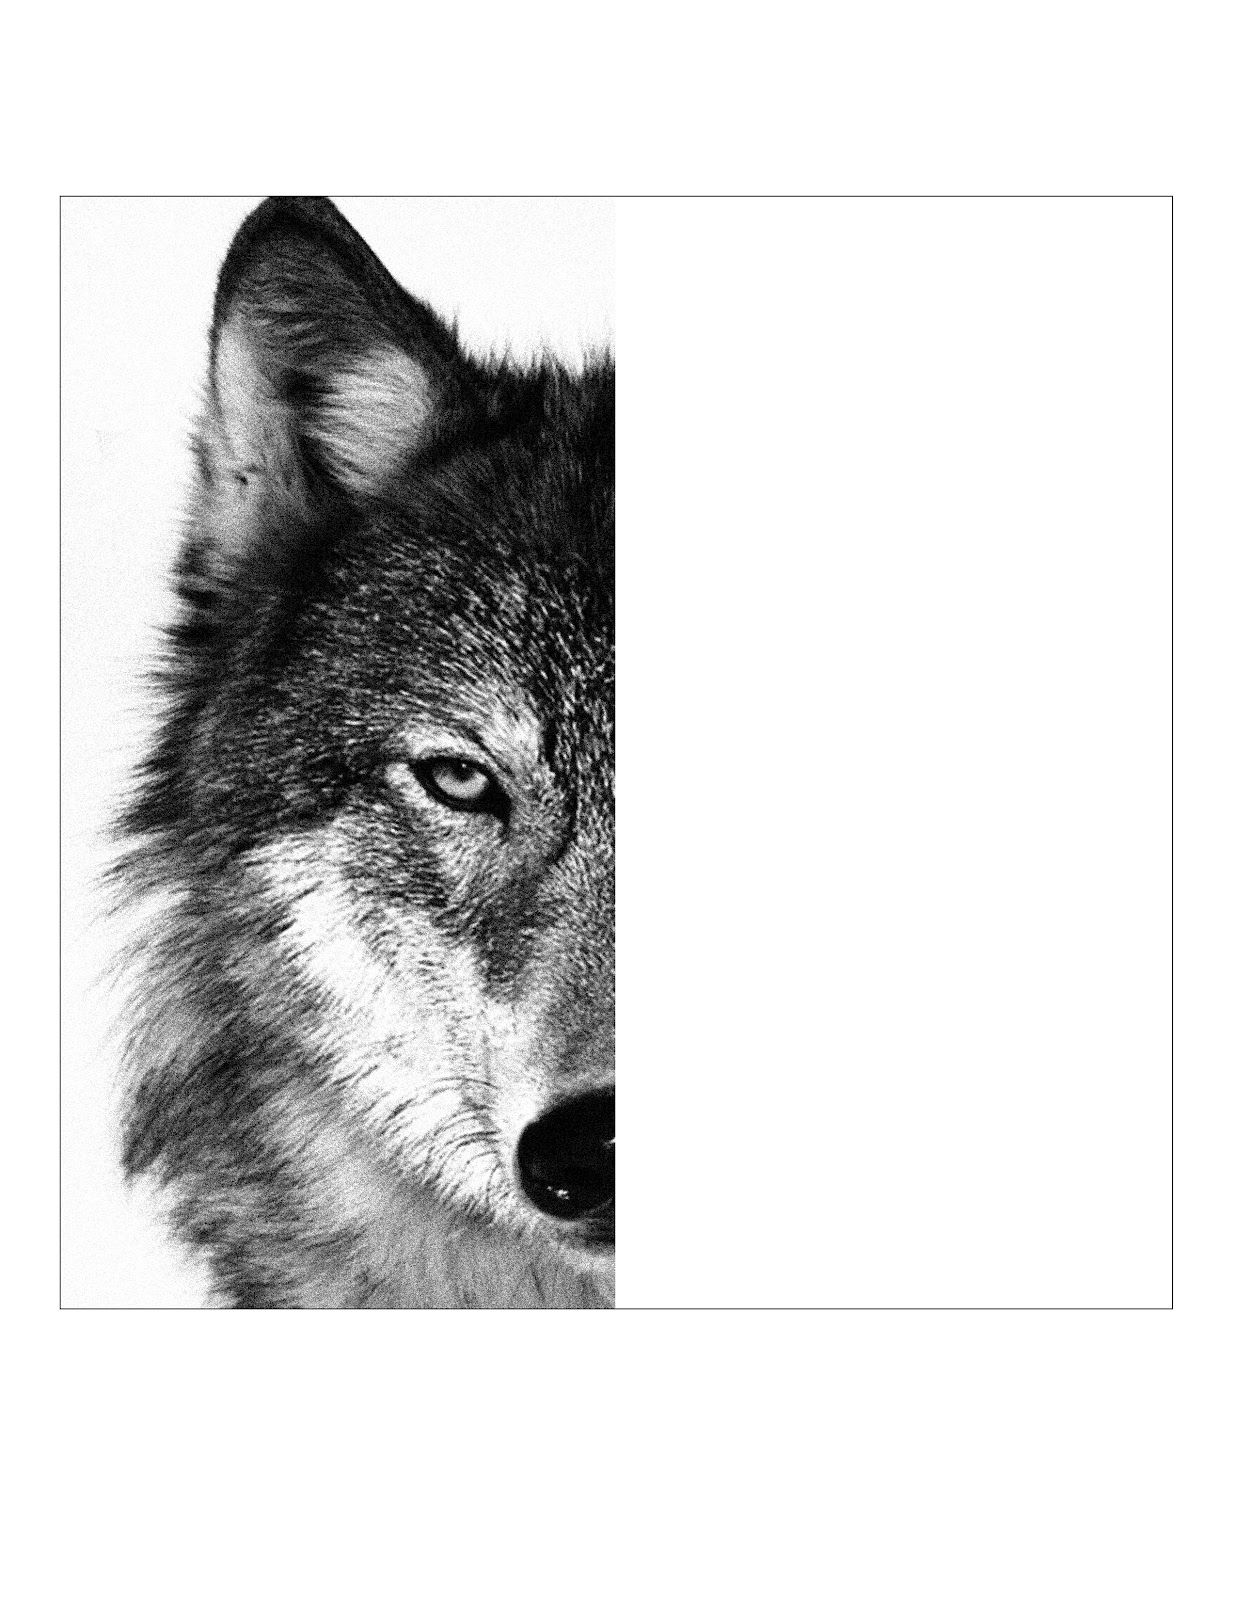 art projects for kids wolf face template draw ideas pinterest